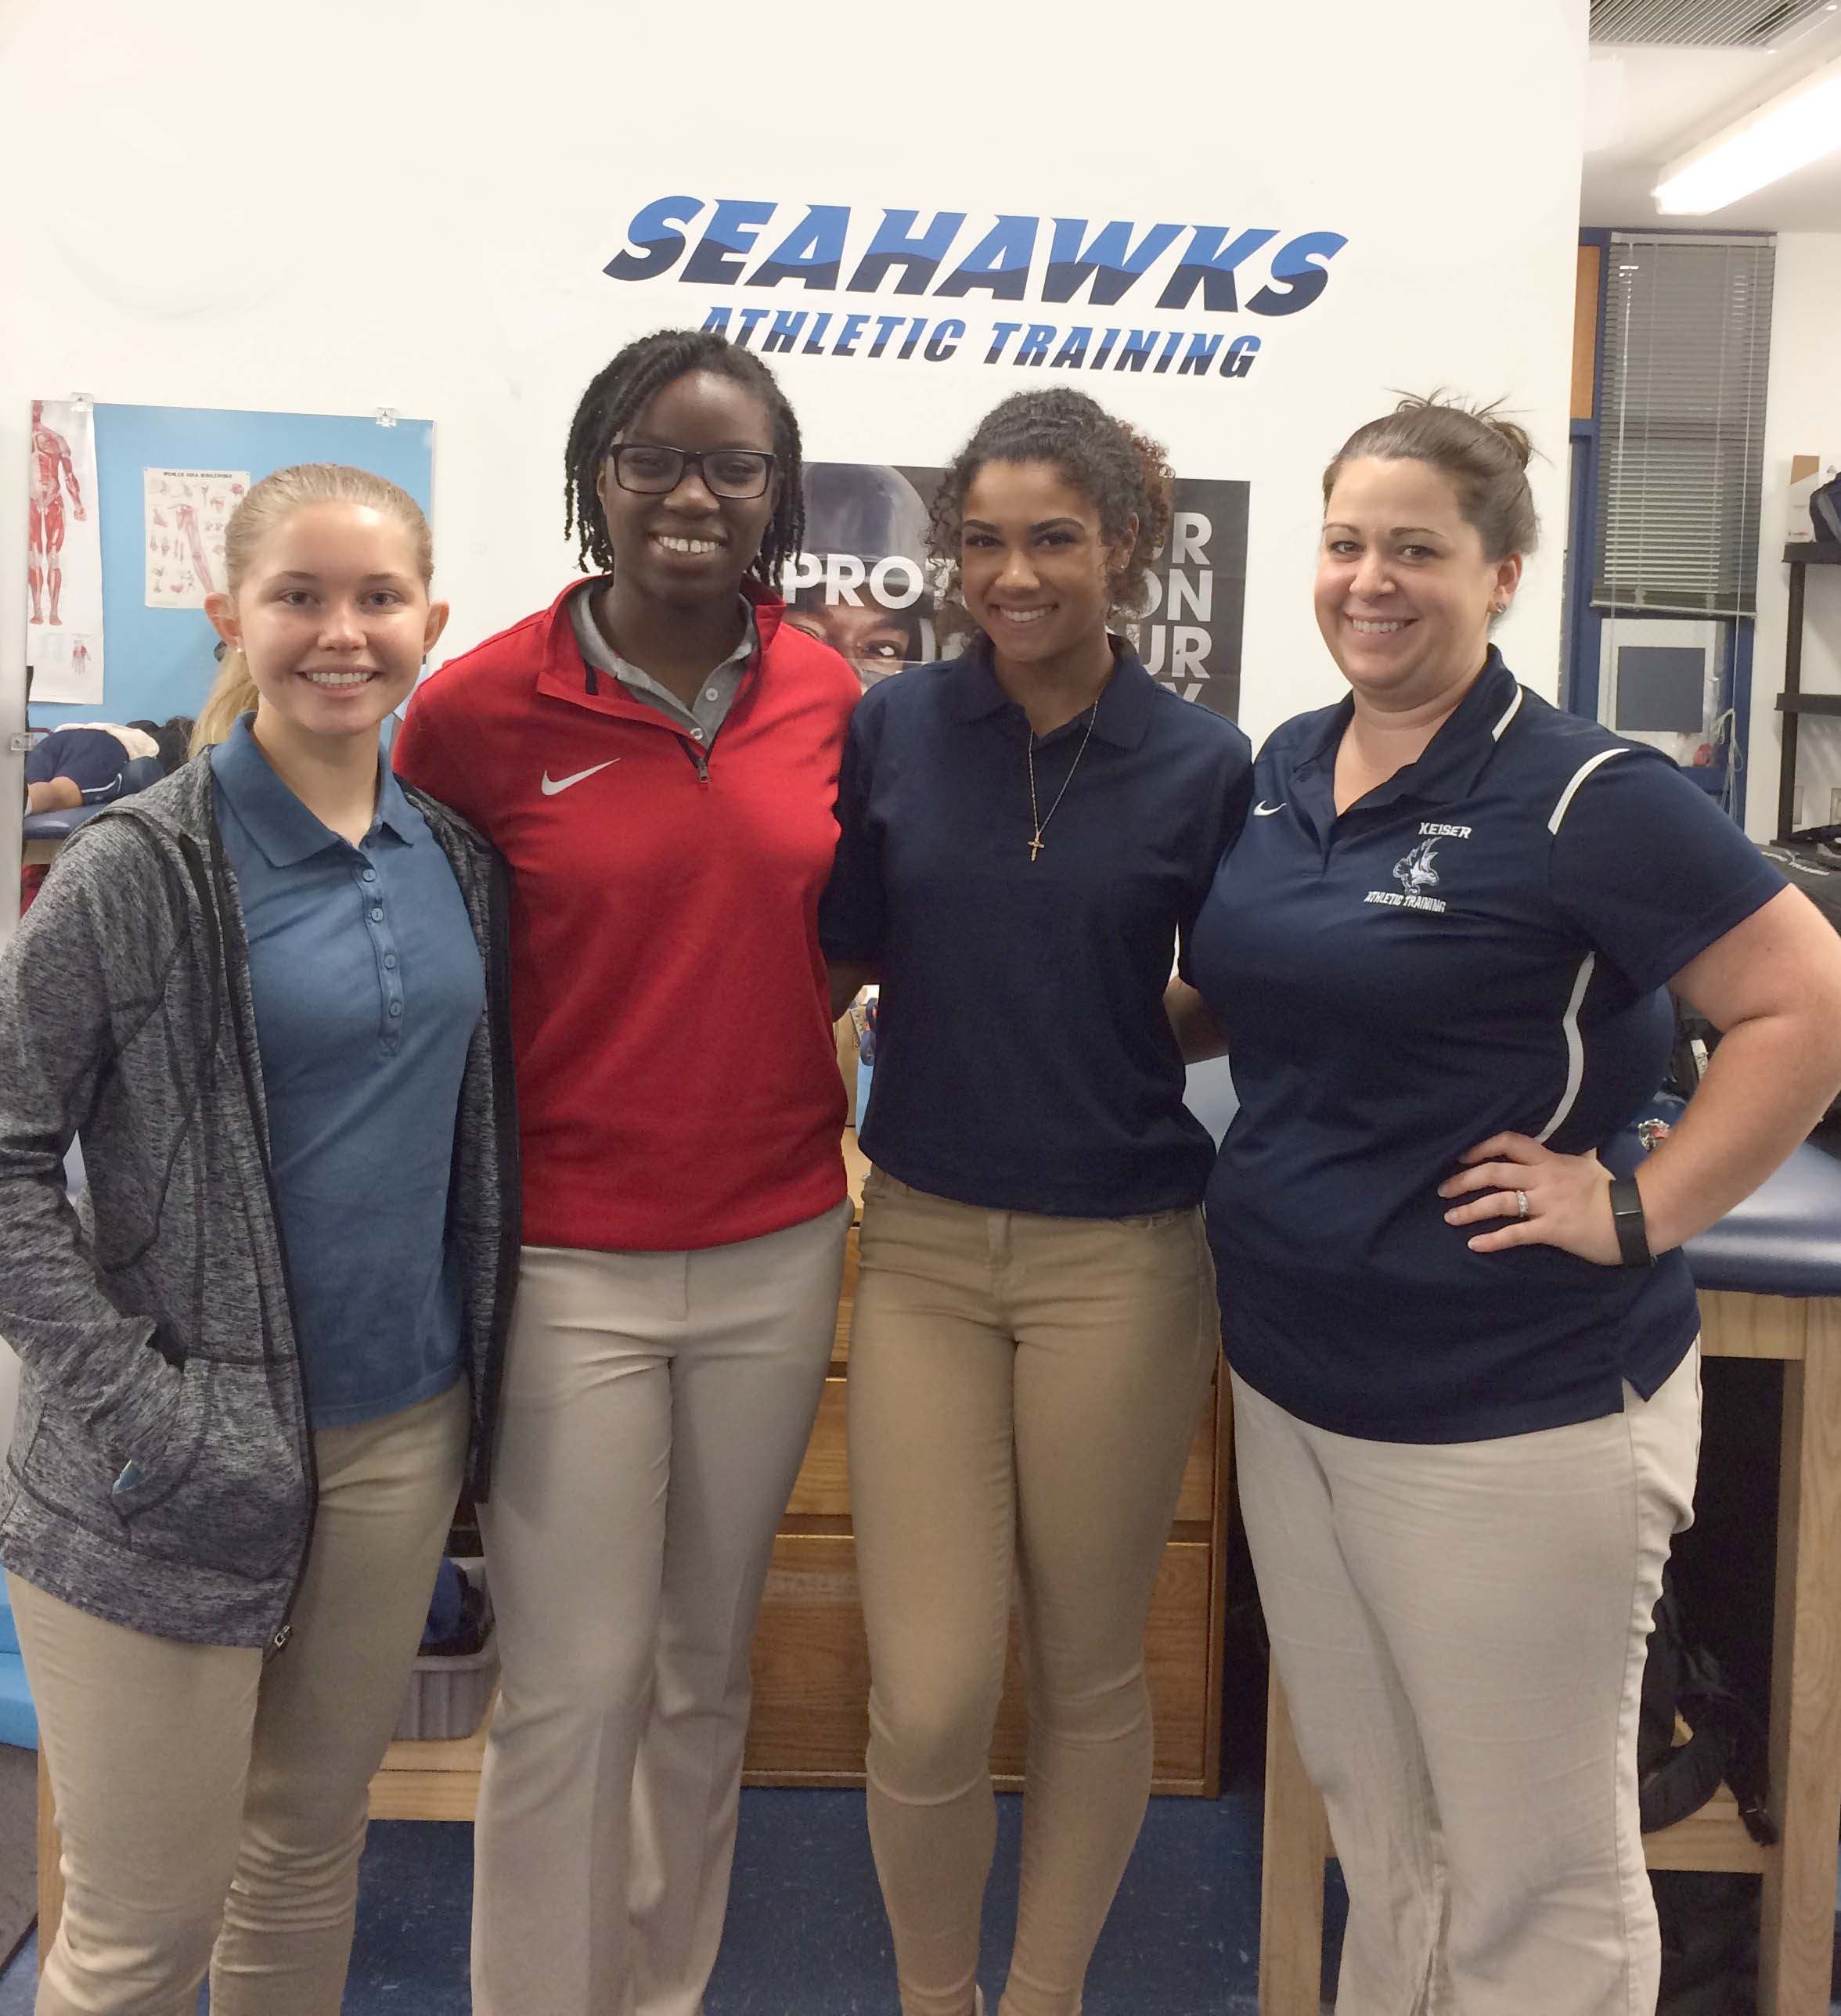 Flagship Athletic Training Department Welcomes High School